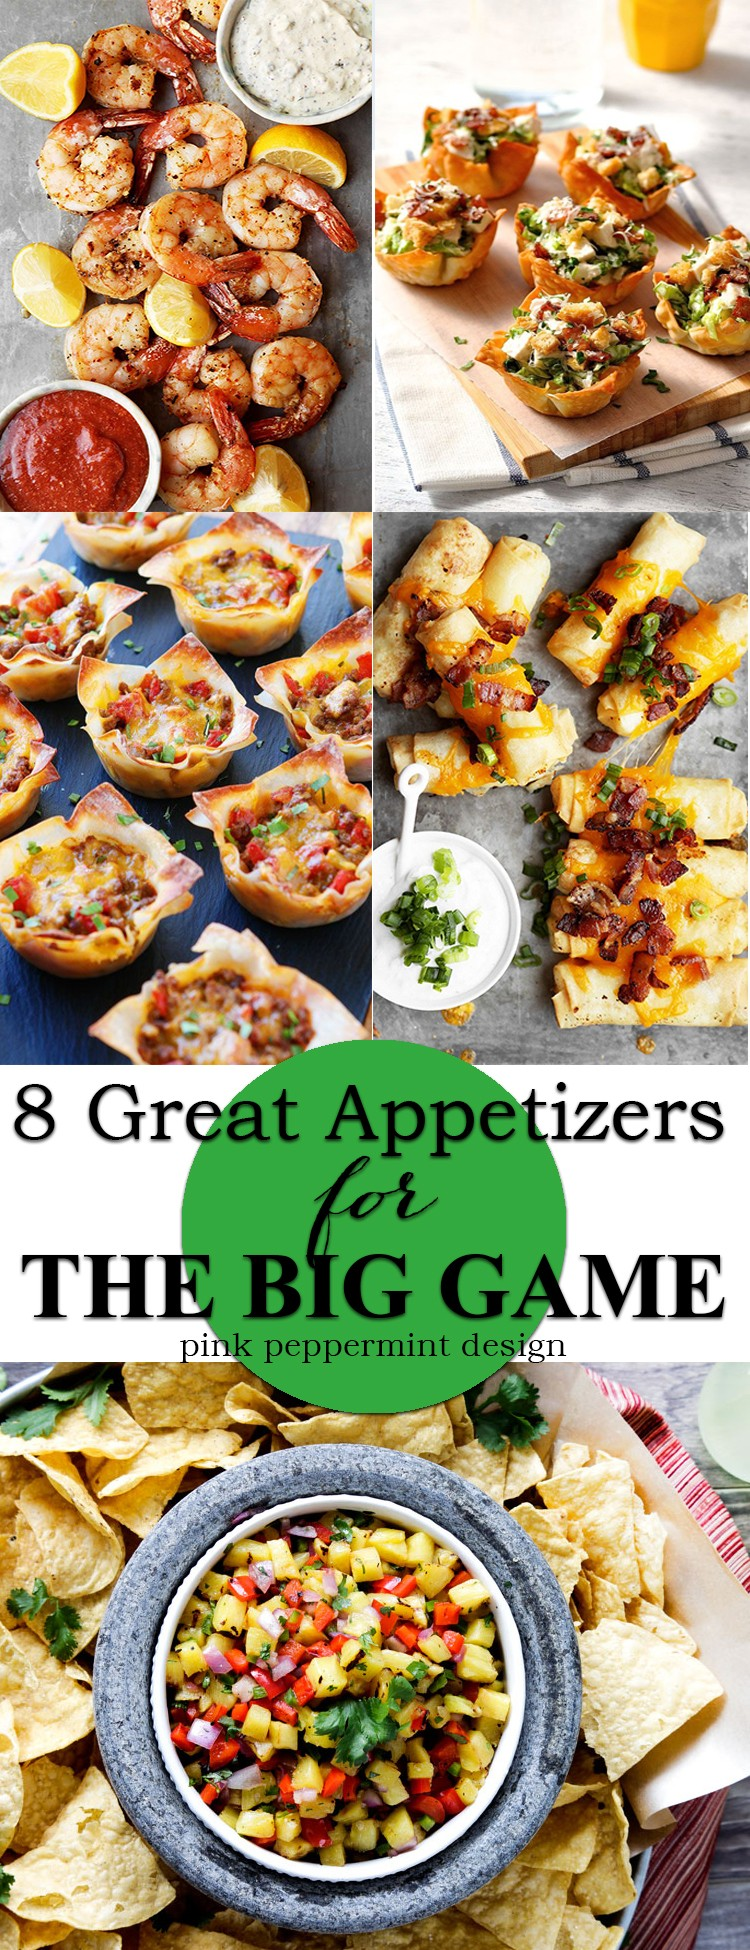 Football Appetizer Recipes by Tammy Mitchell